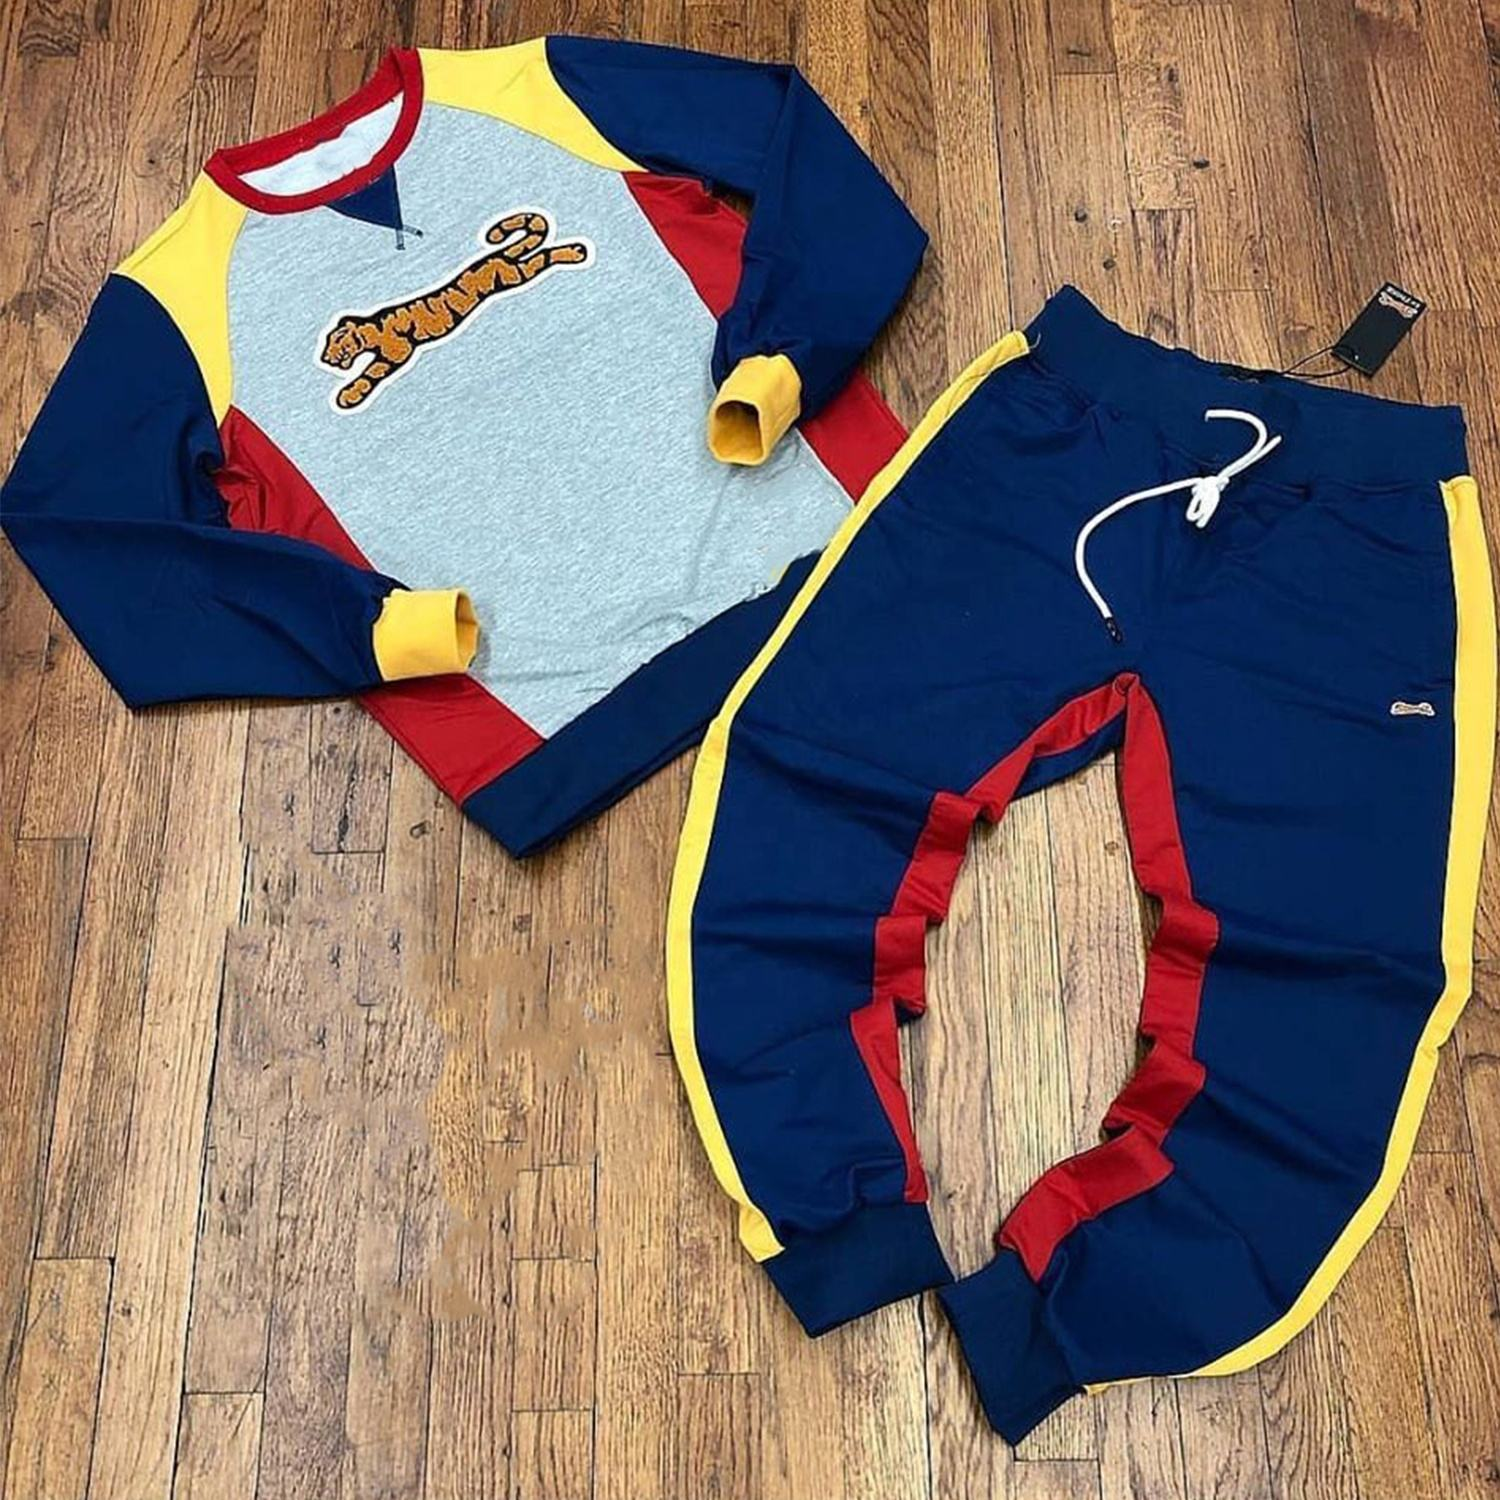 Wholesale Blank Track suits Design Your Own jogging Men Jogger Sweat suits with side stripes Made by Antom Enterprises